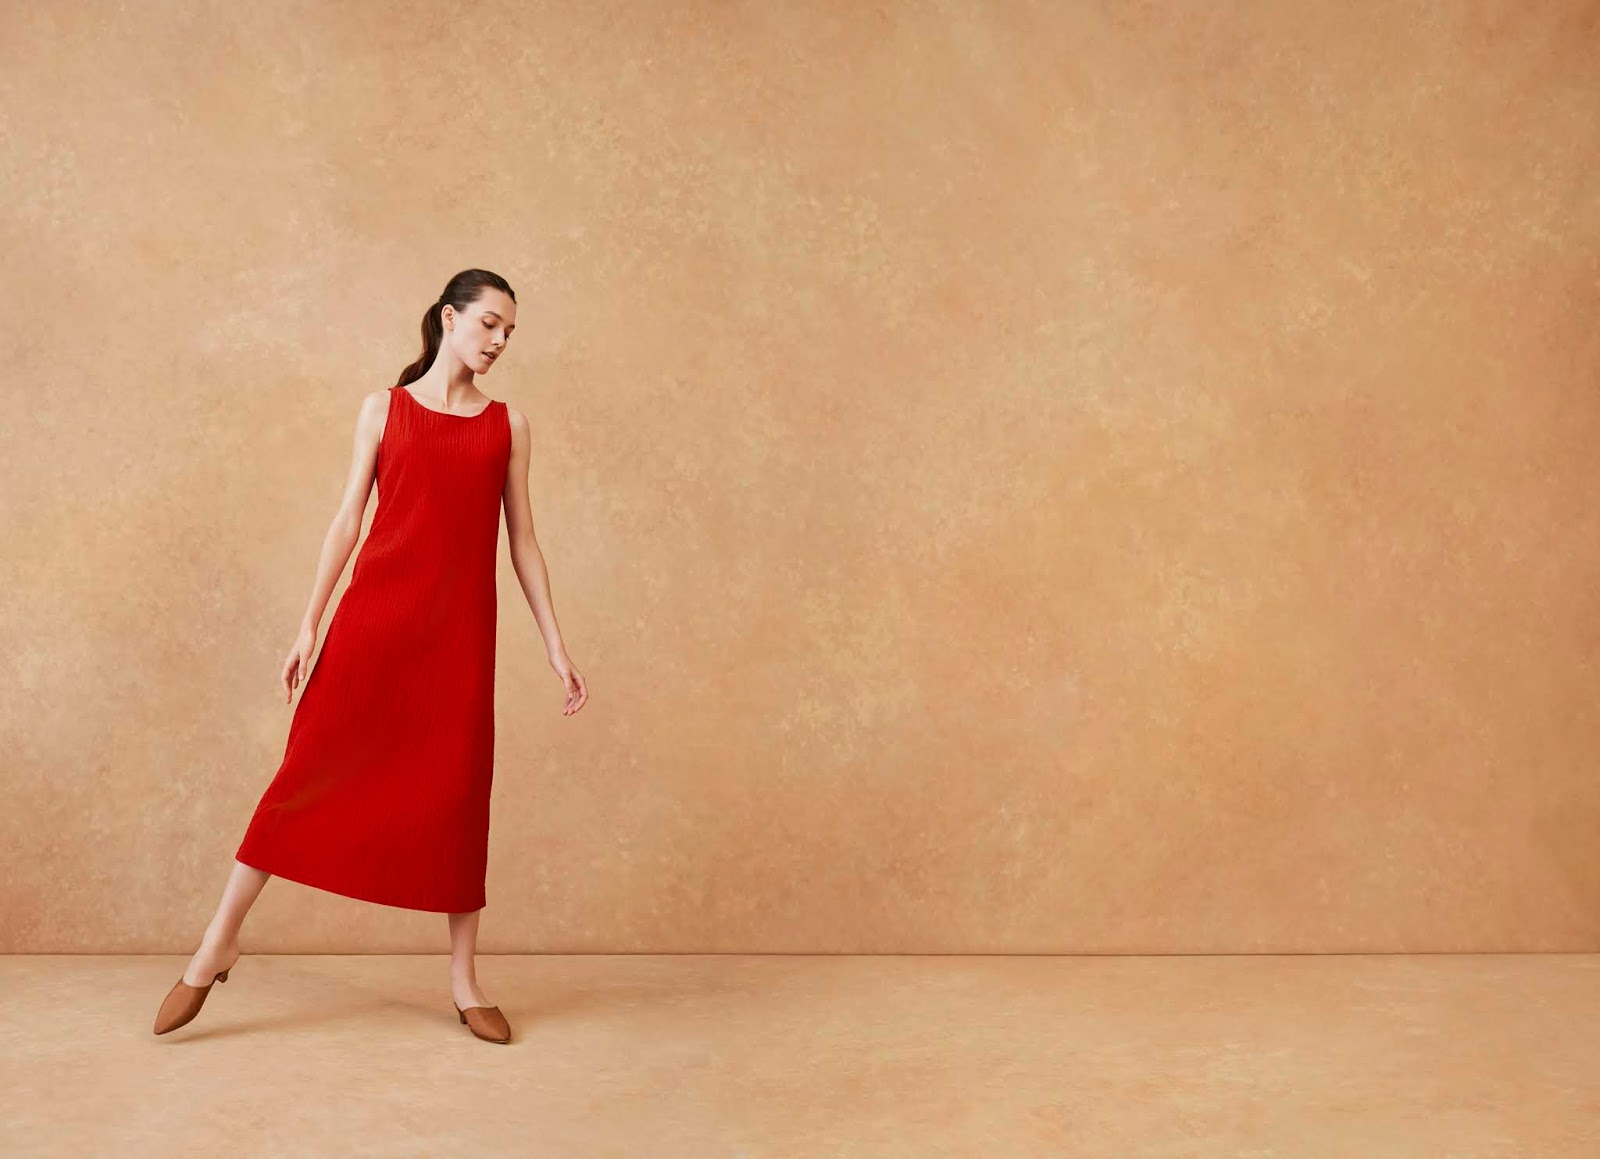 """83021f5755a217 Ms. Tajima commented, """"I created this collection so women can match their  styling preferences to their lifestyles. Another key design focus was to  offer ..."""